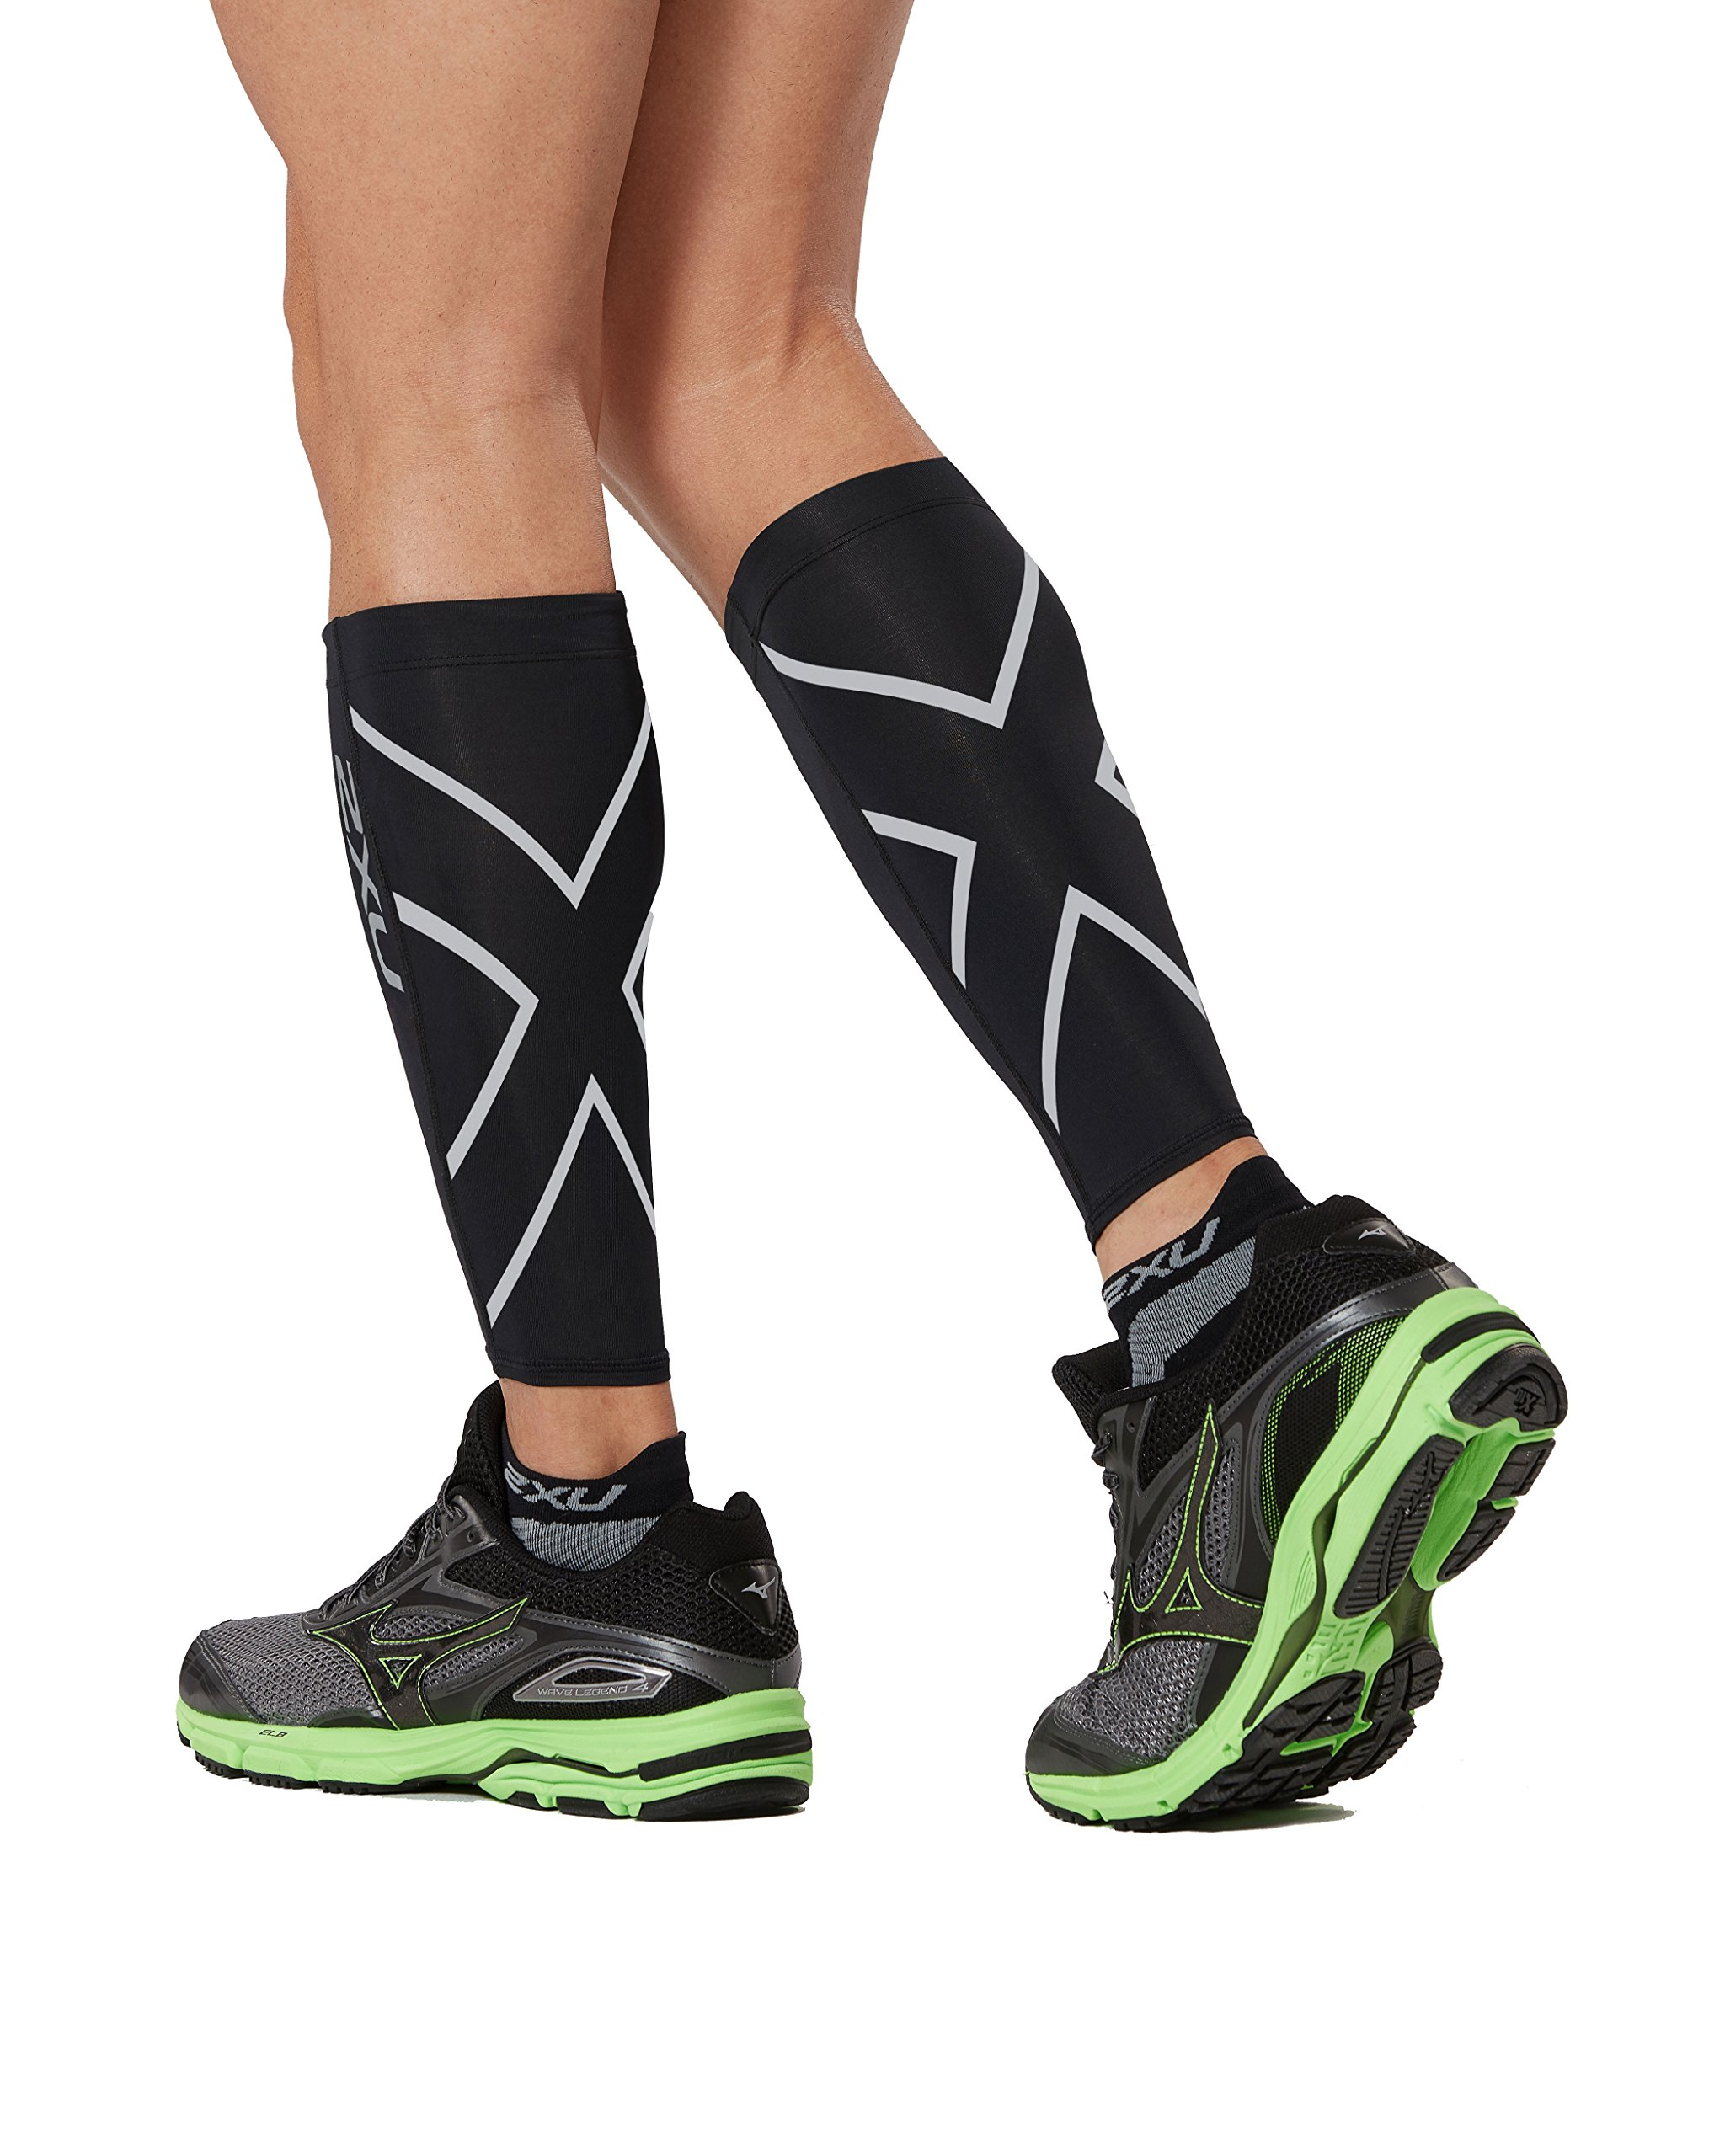 2XU Compression Calf Guards, Black/Black, Large by 2XU